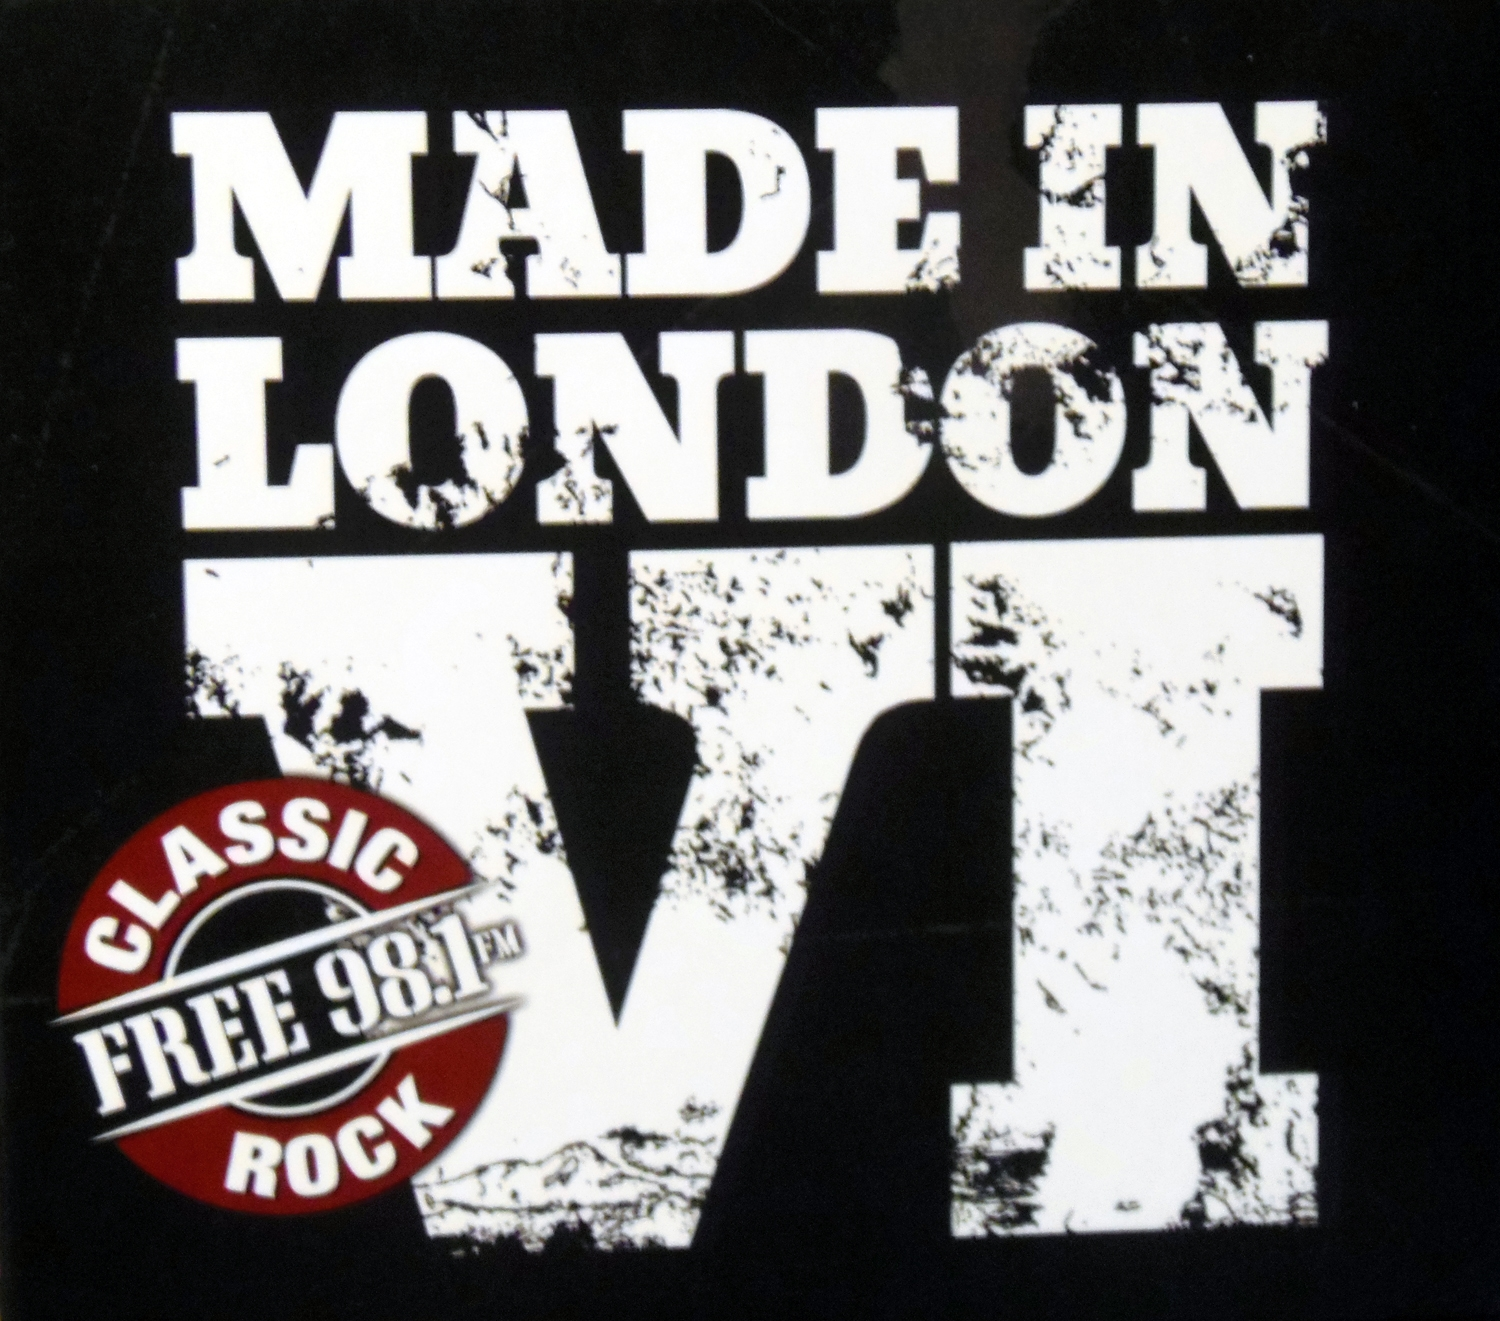 Made In London compilation album.